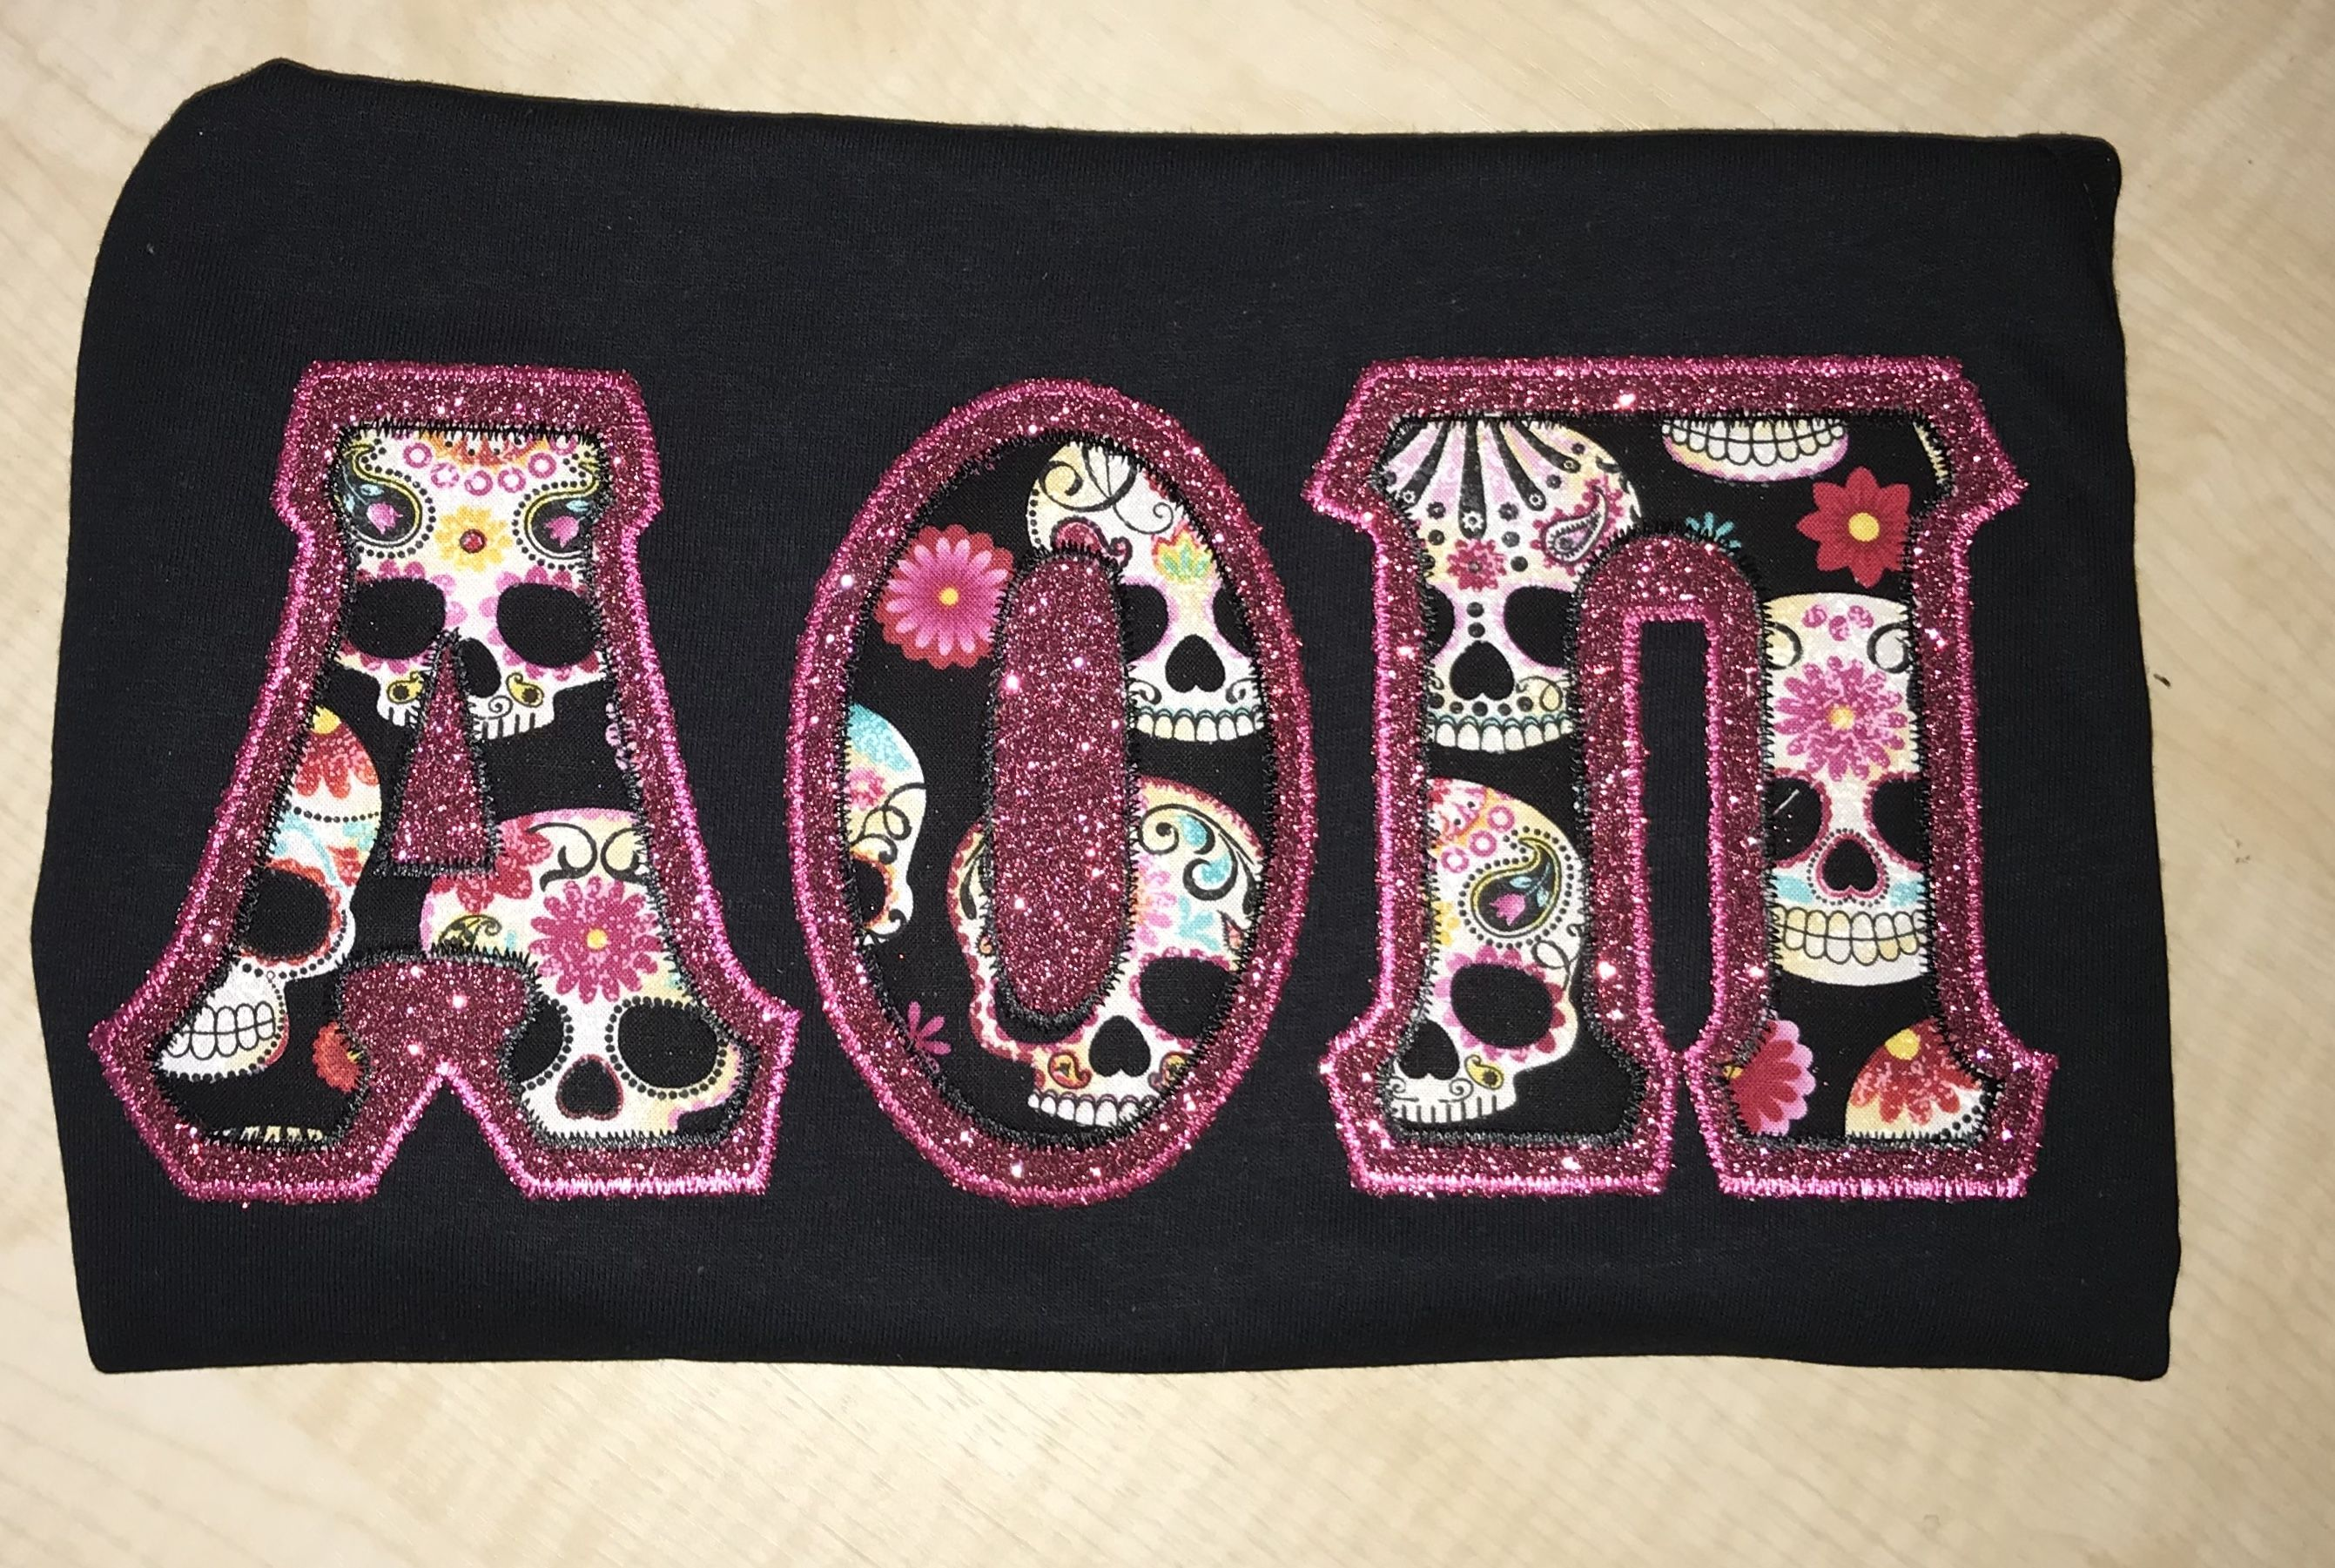 Stitching Letter Letters Sew Embroidery Full Sew